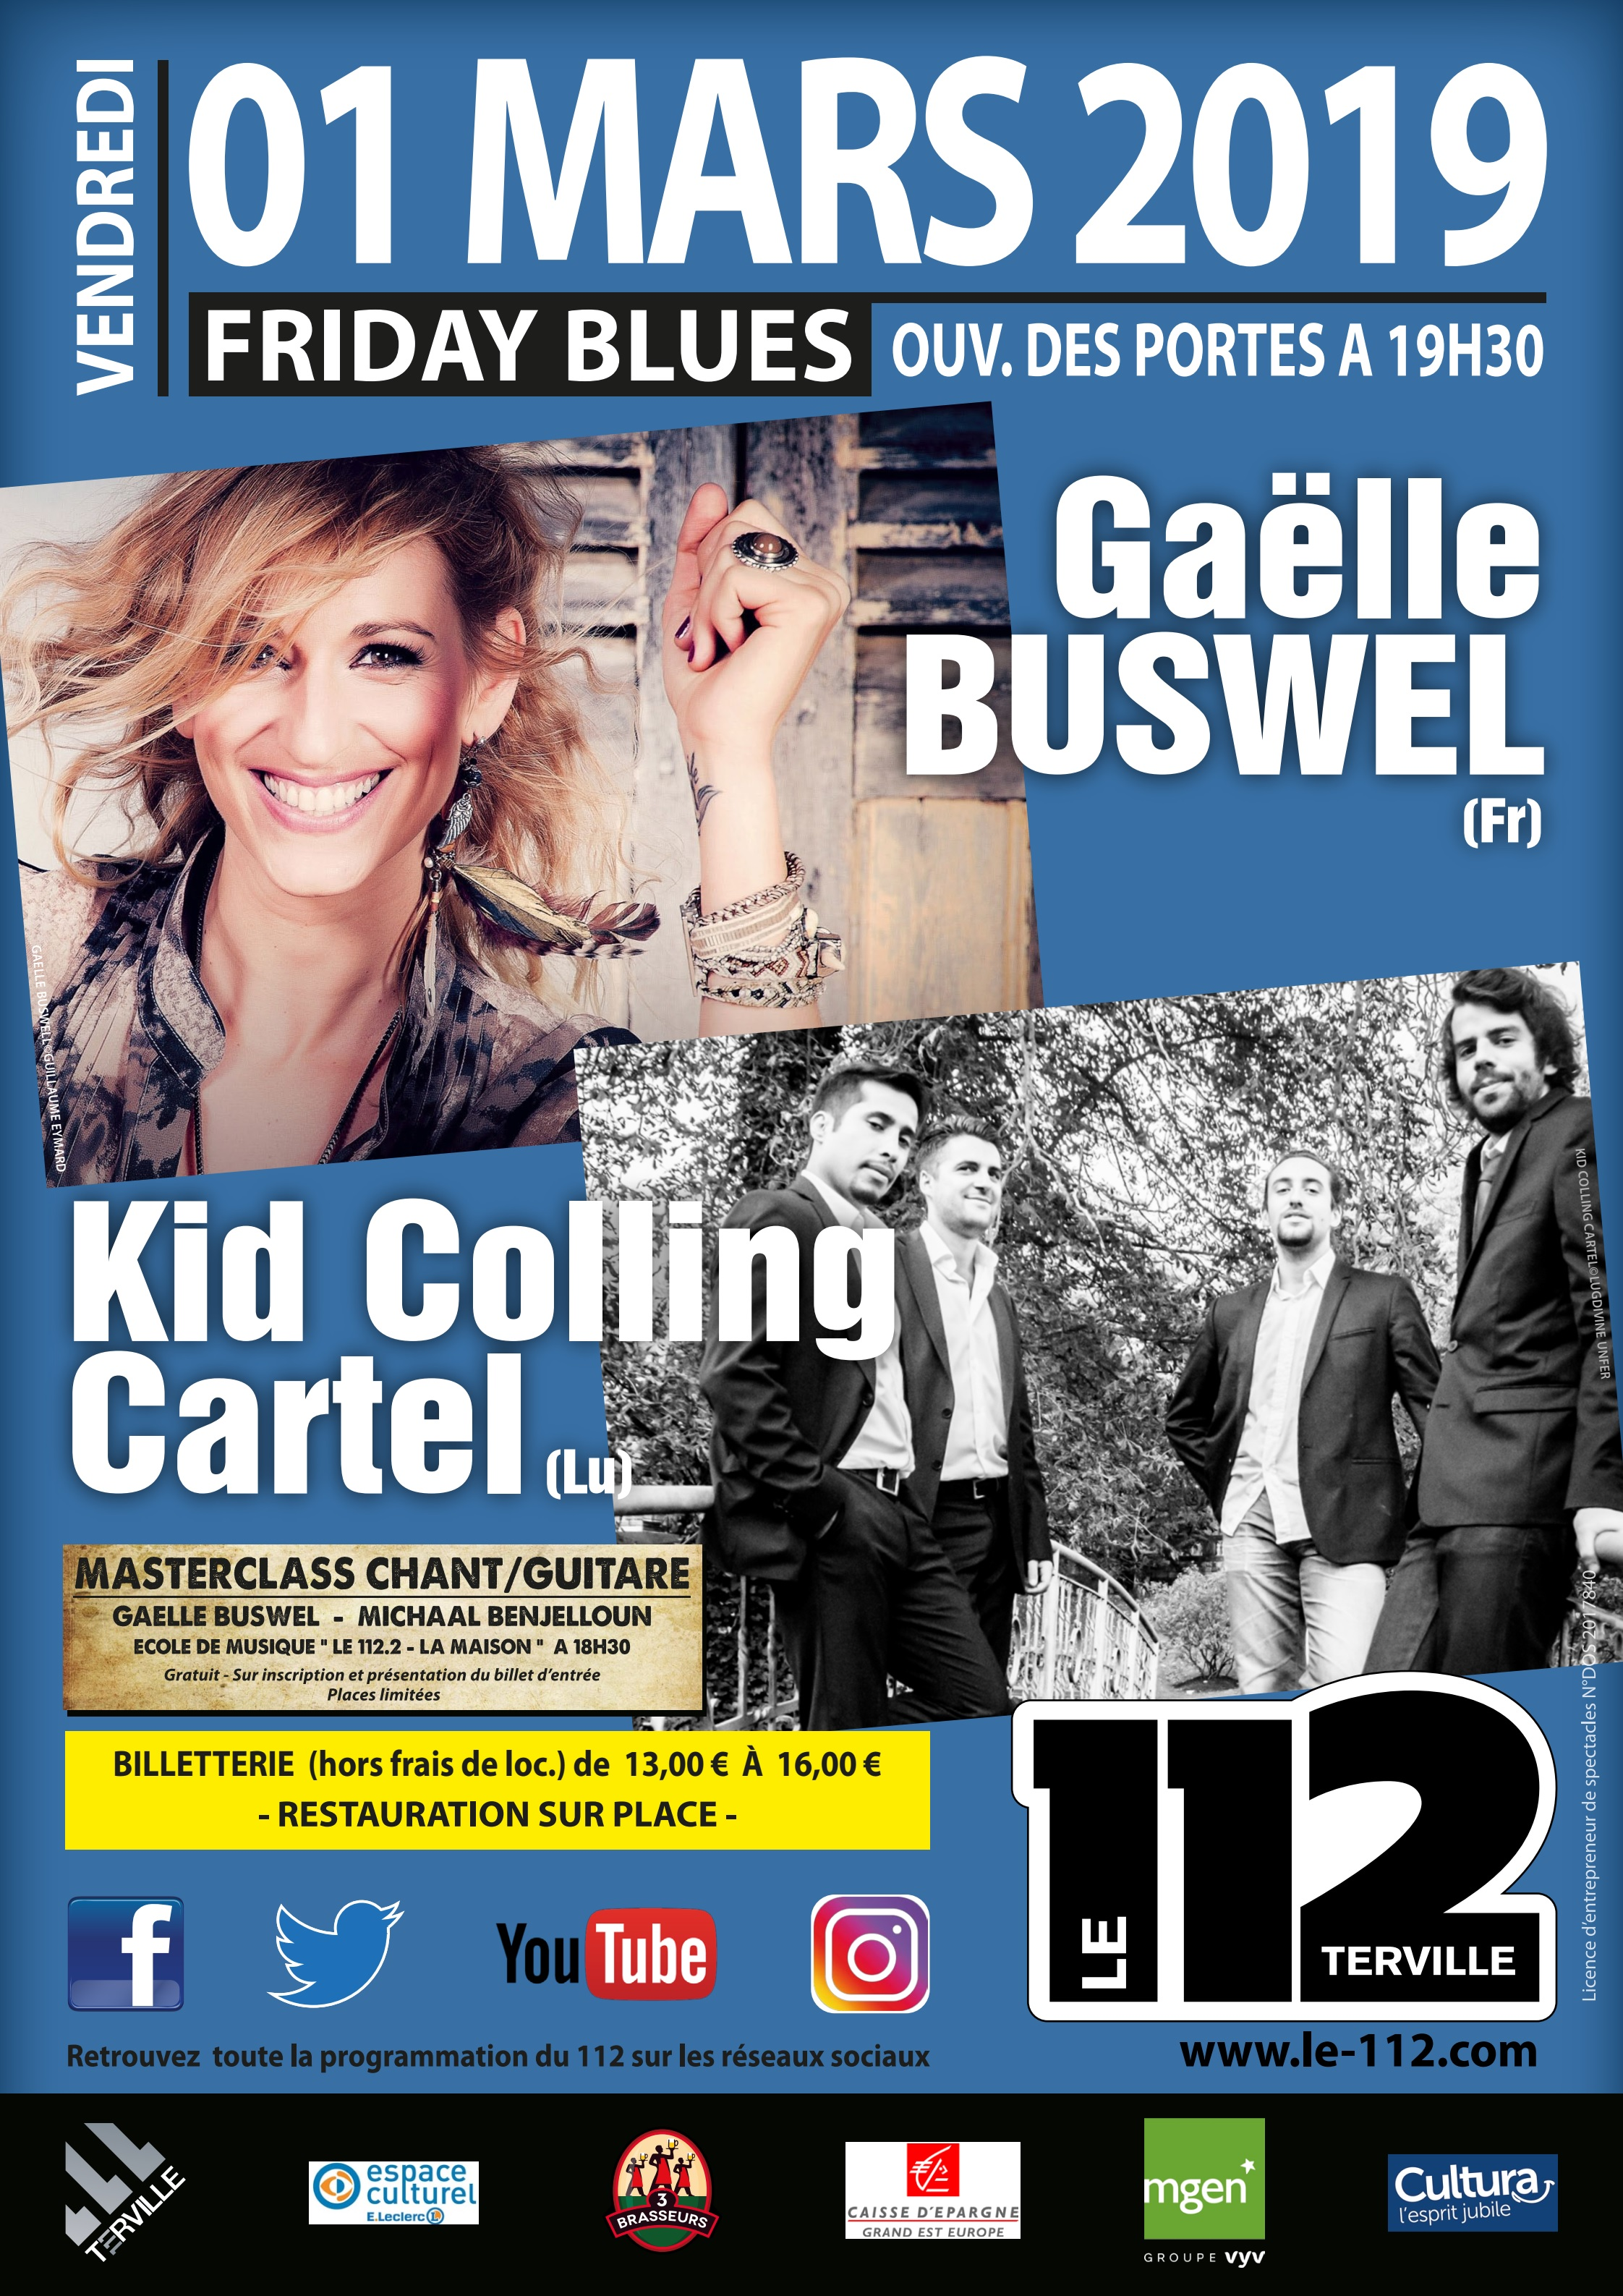 GAELLE BUSWEL + KID COLLING CARTEL